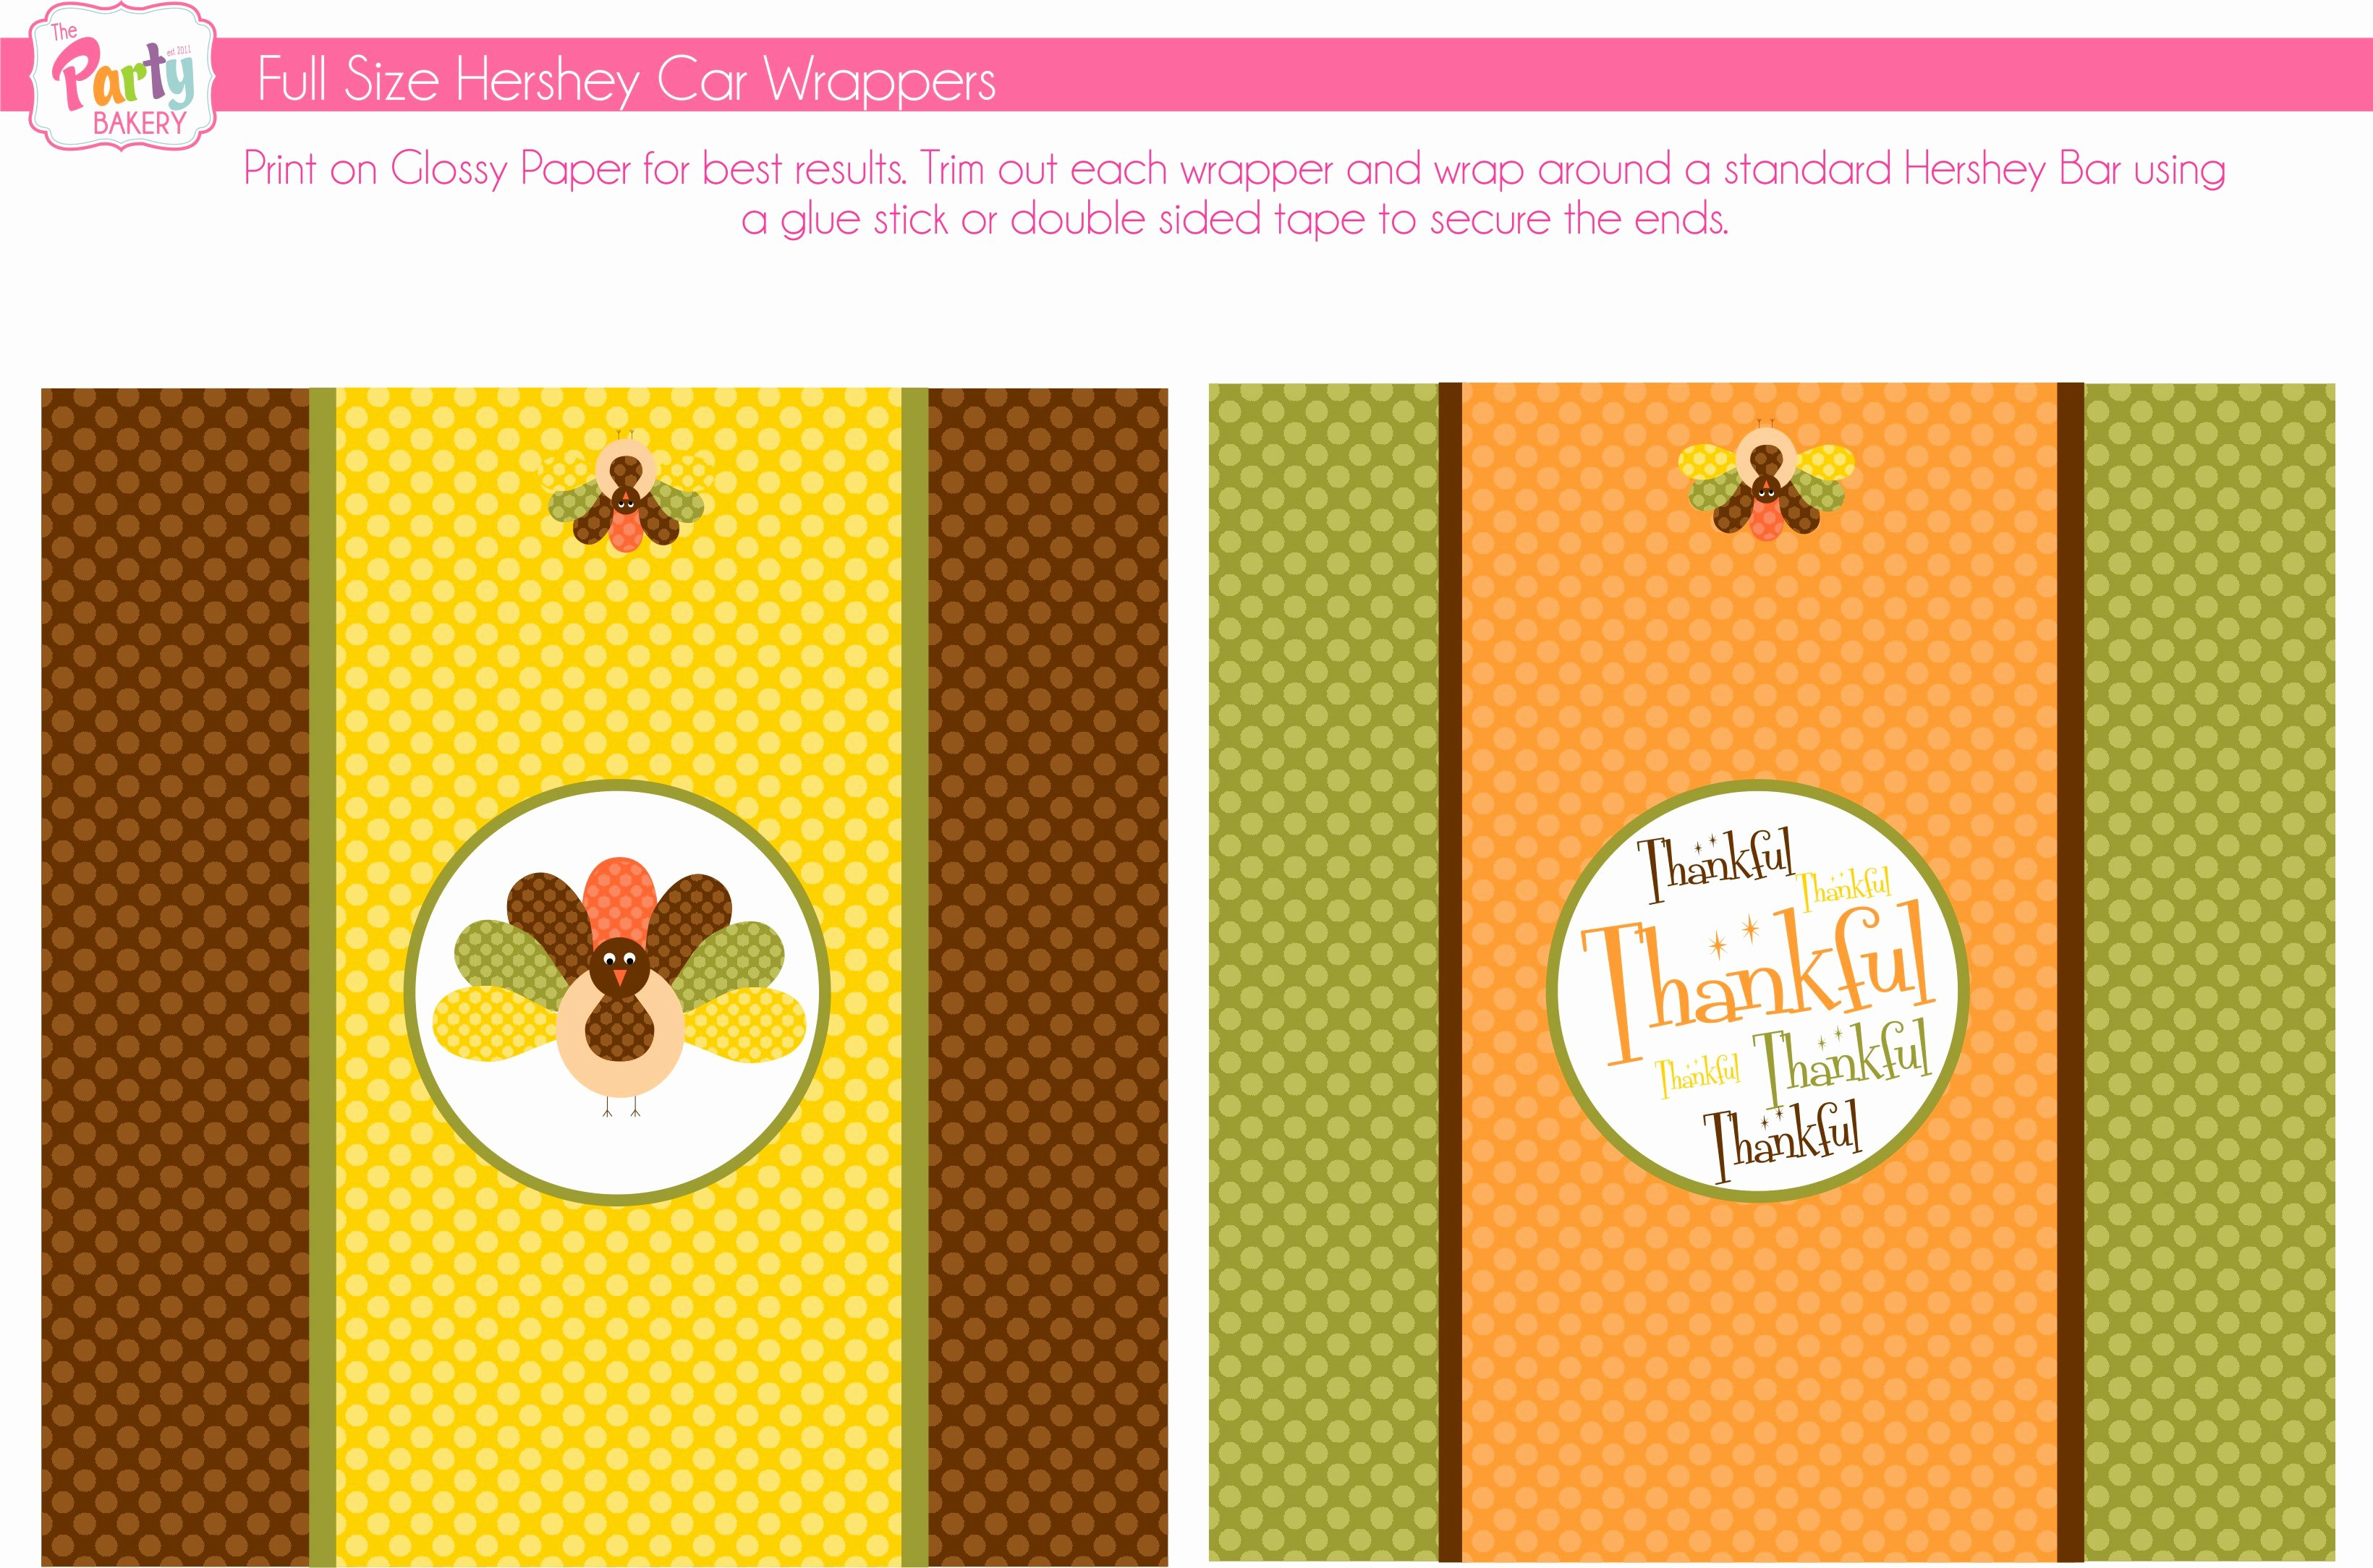 Free Candy Wrapper Template Fresh Free Thanksgiving Printables From the Party Bakery